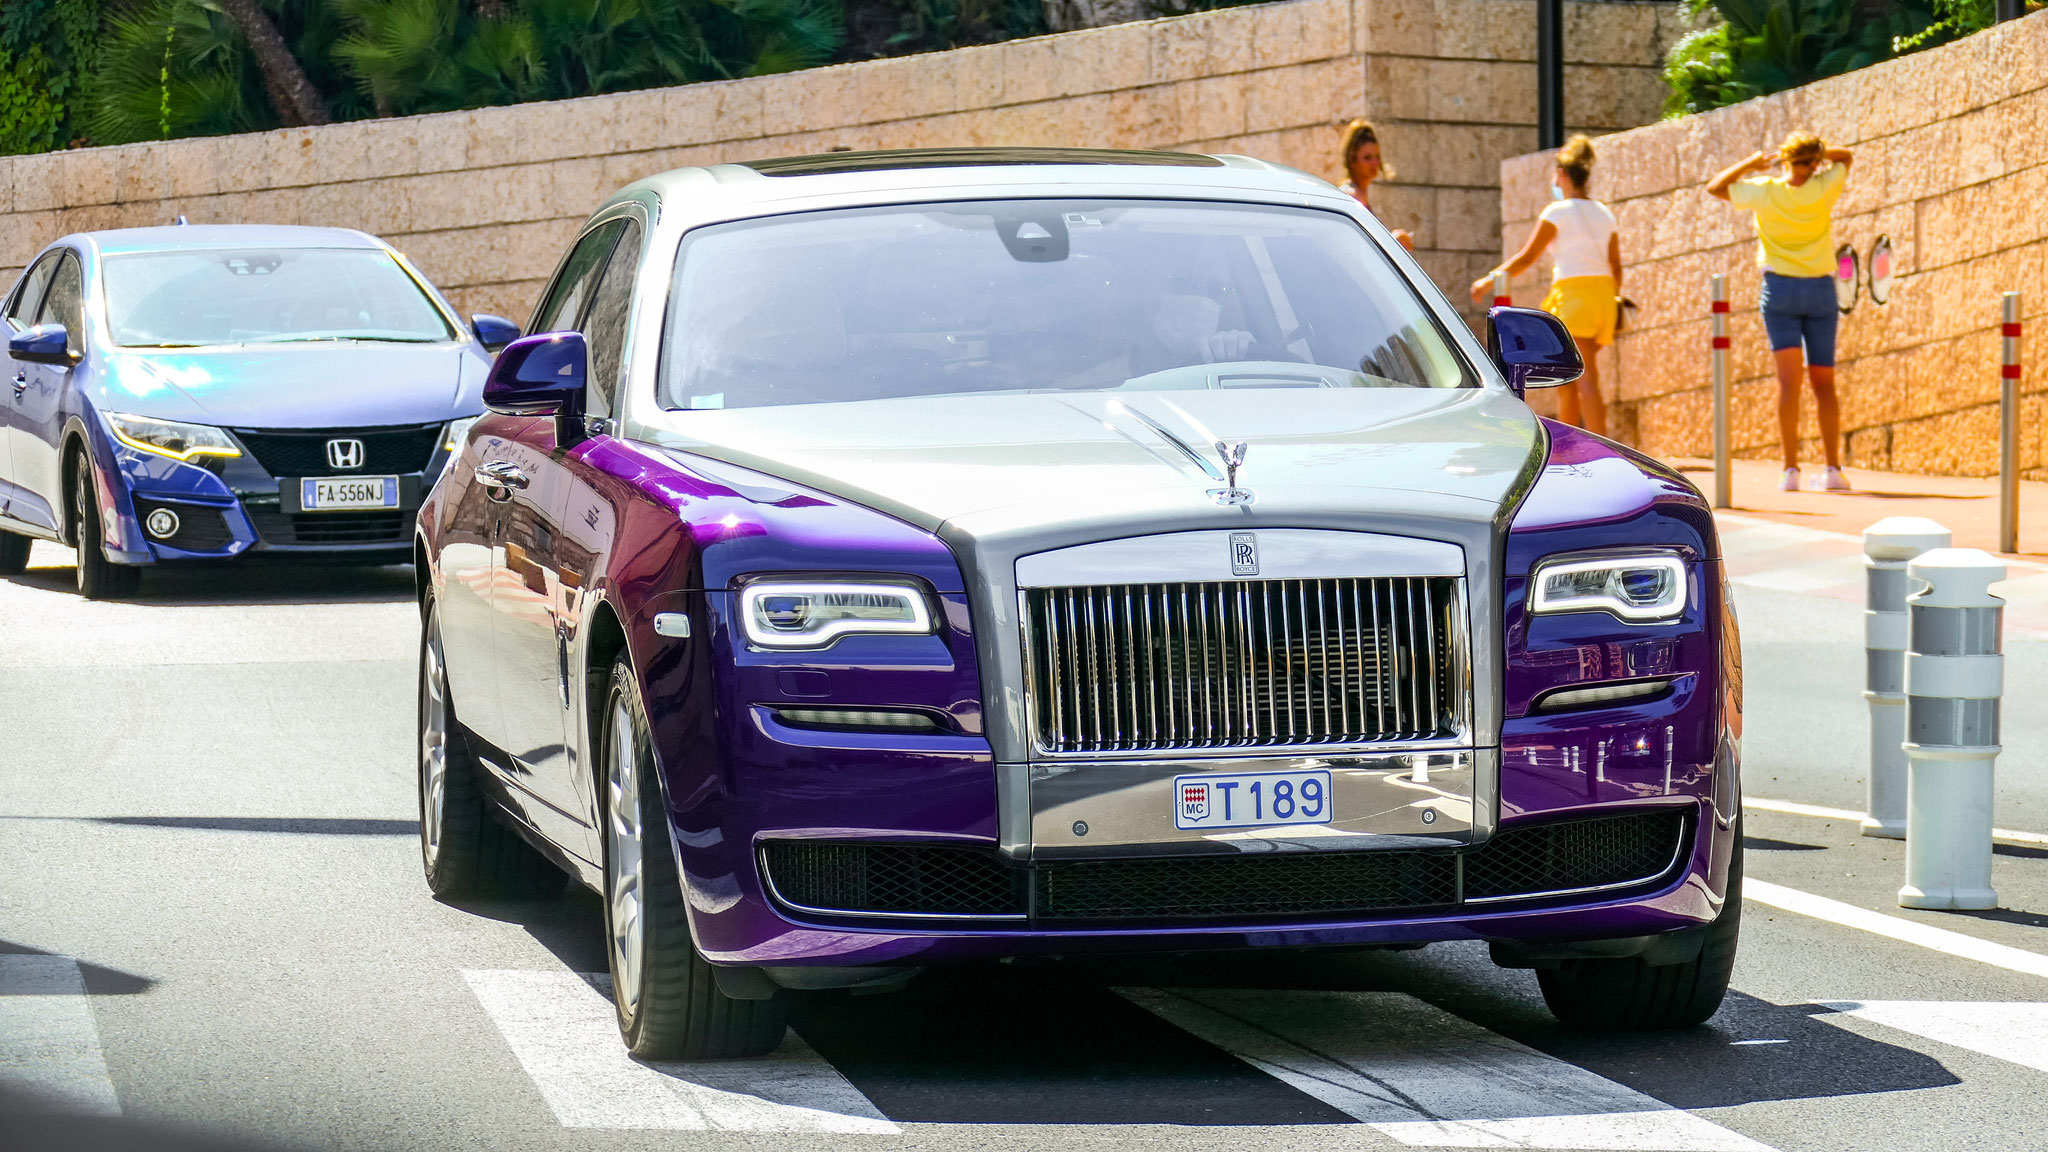 Rolls Royce Ghost Series II - T189 (MC)